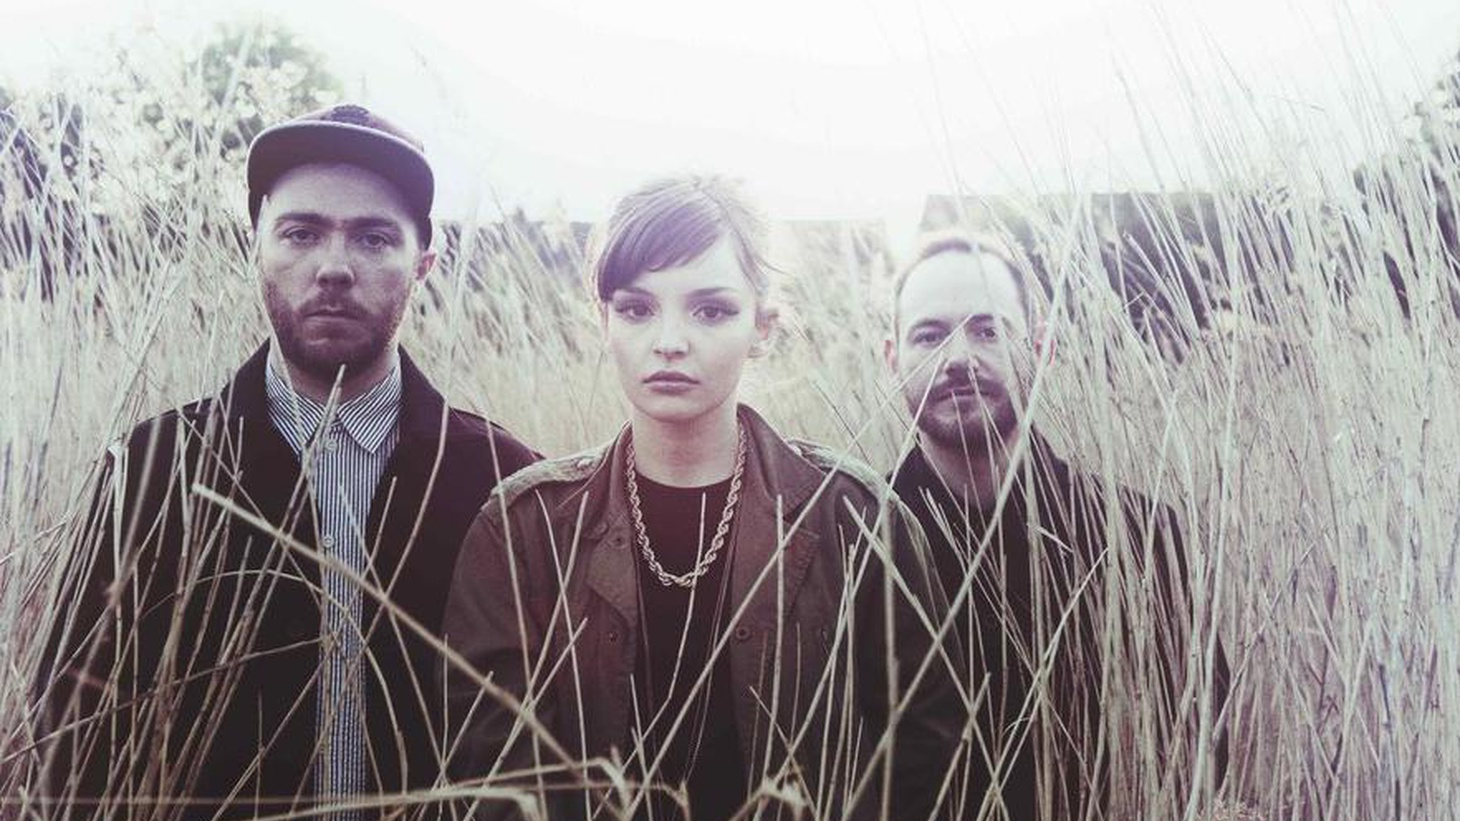 The Bones of What You Believedoes a fine job gathering up all of Chvrches' charms into one diverse but cohesive collection of brightly rendered buzzy wonders.